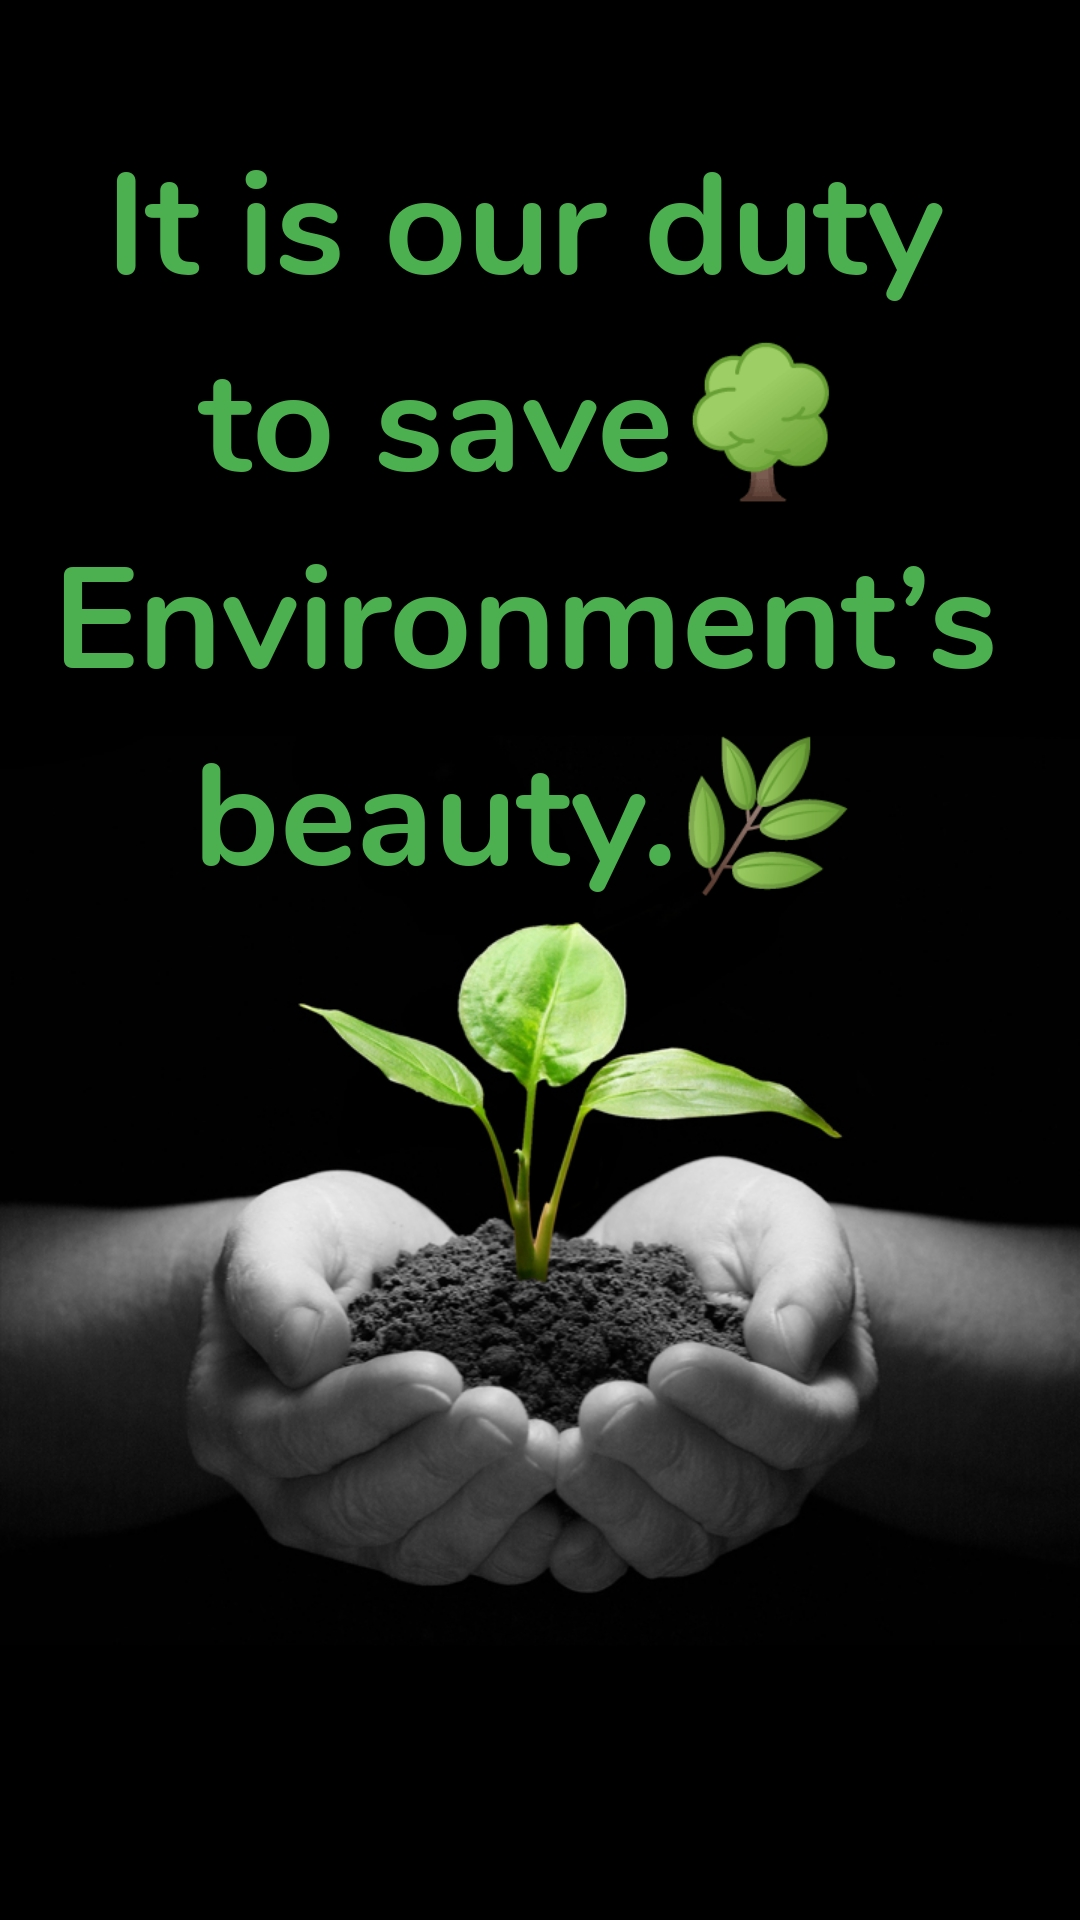 It is our duty to save🌳Environment's beauty.🌿